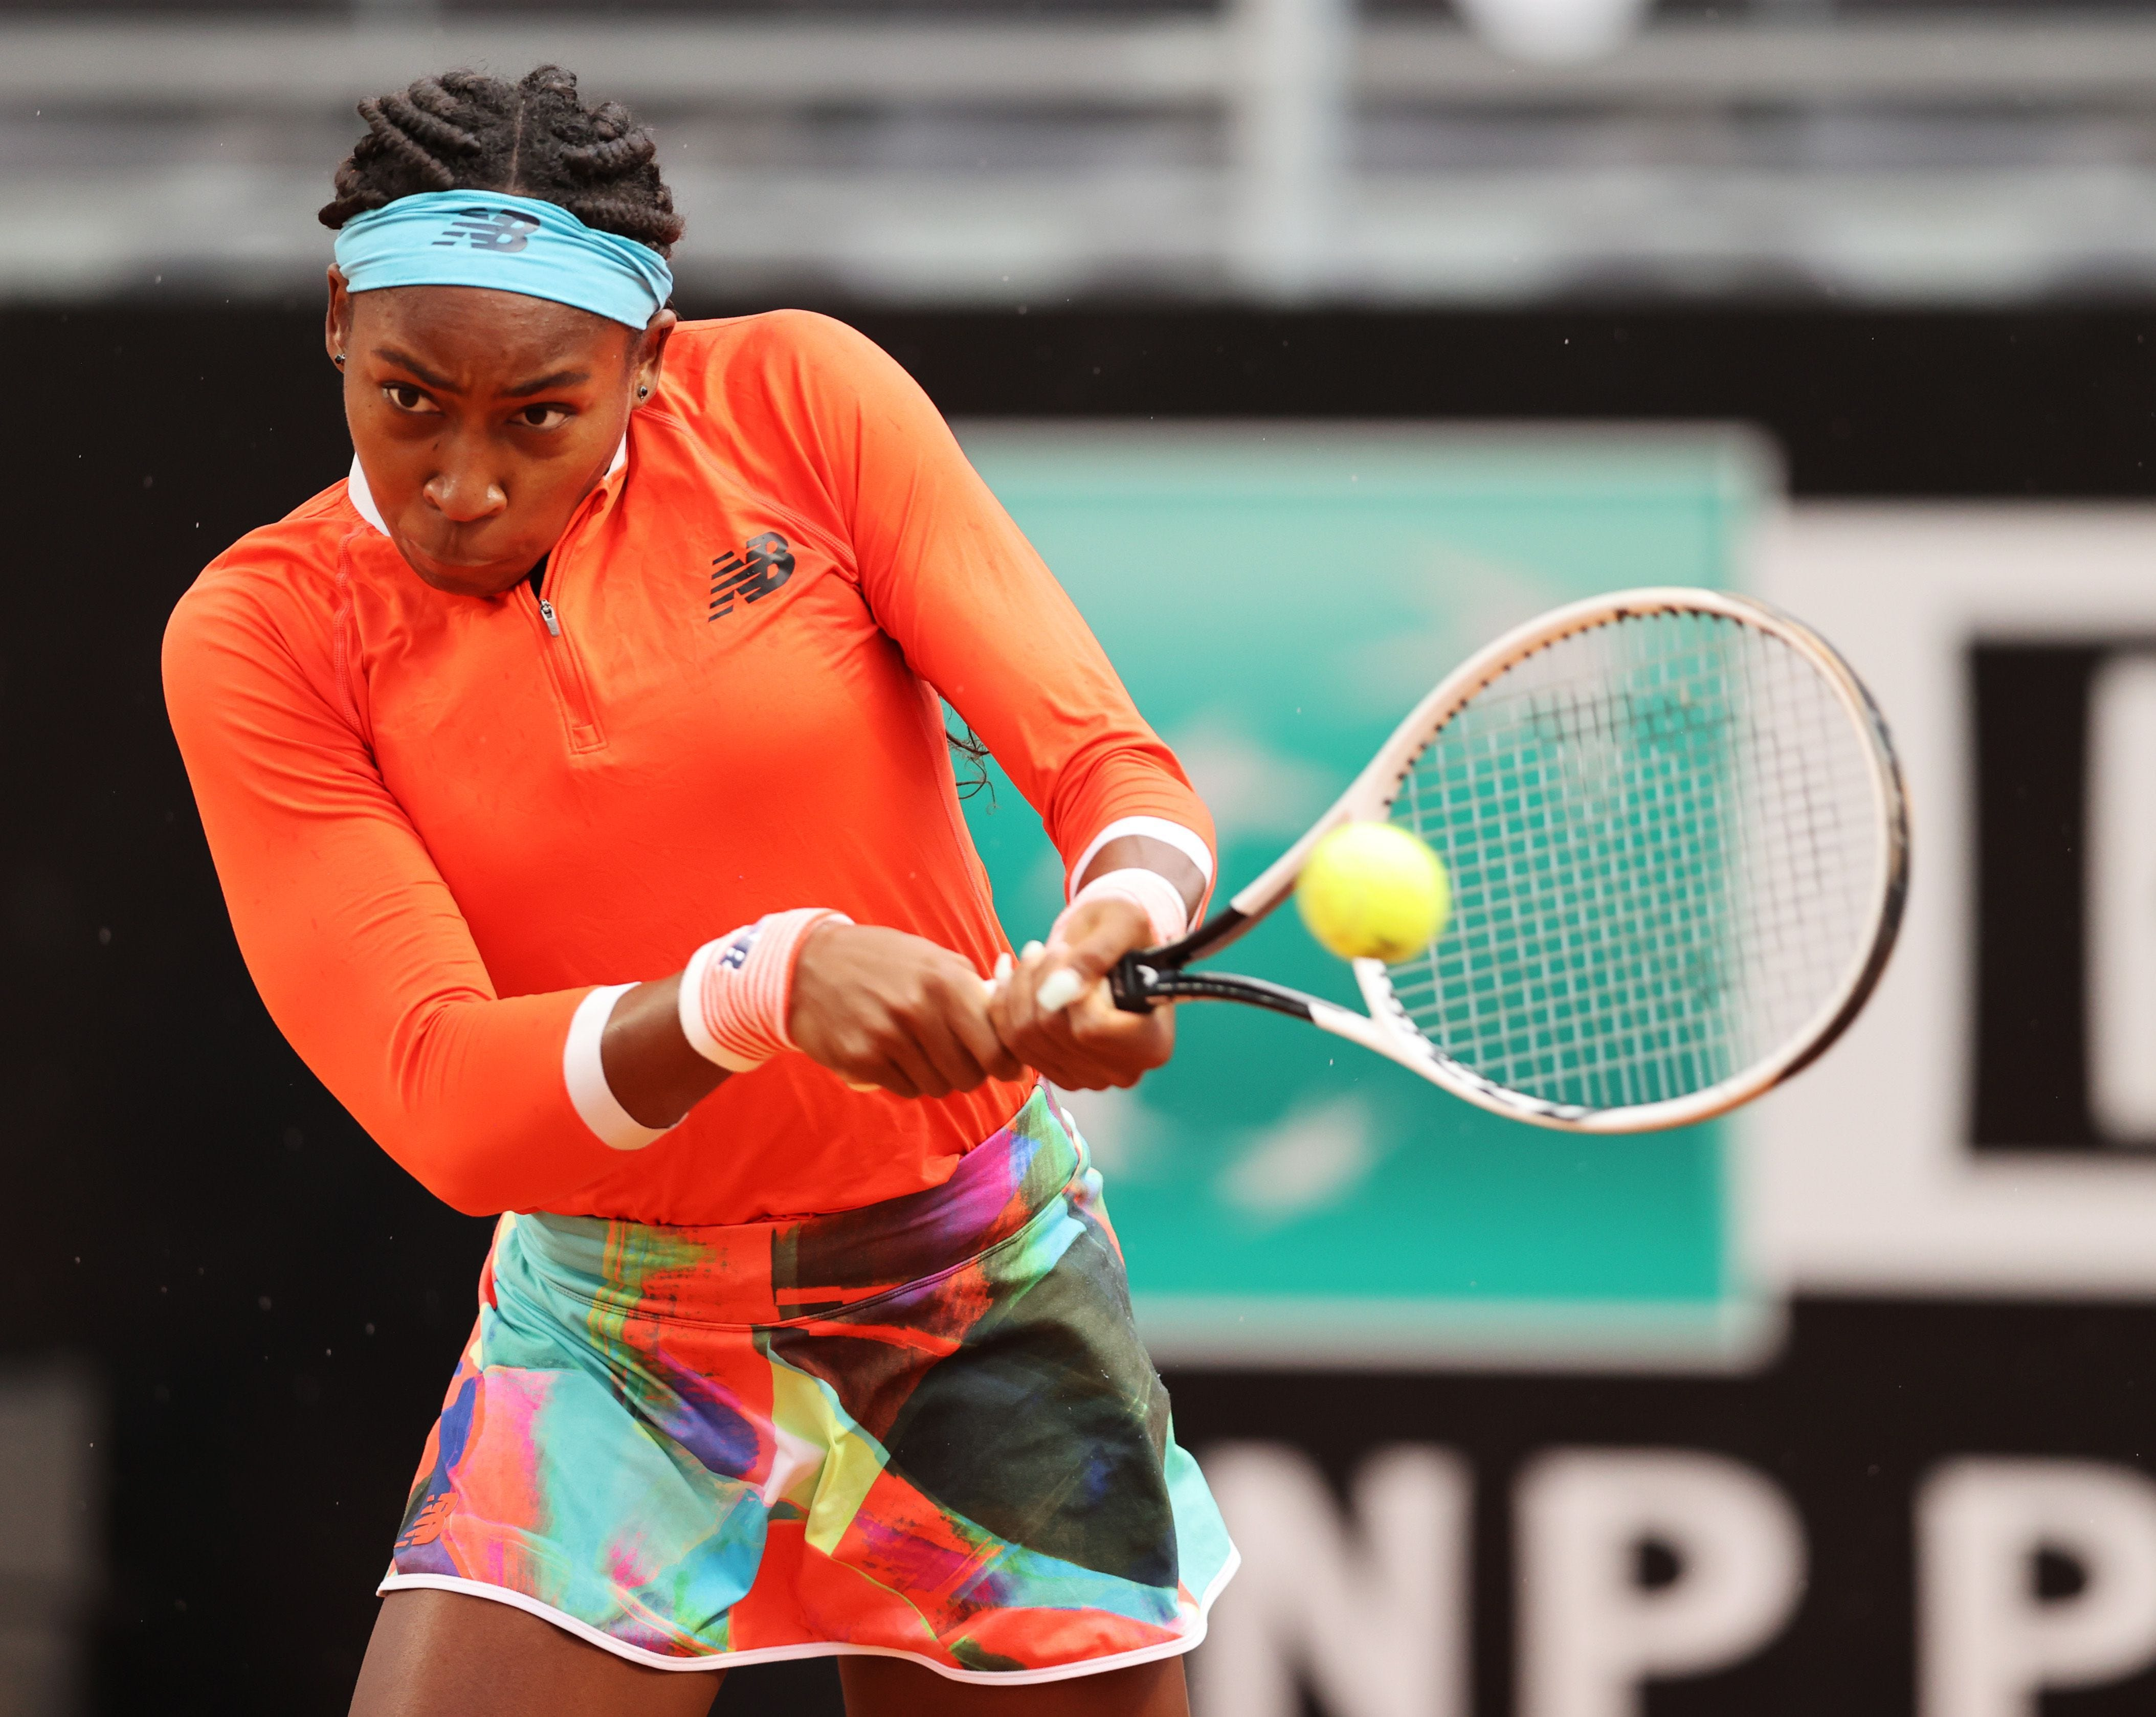 Opinion: American Coco Gauff, now 17, looks ready to challenge French Open